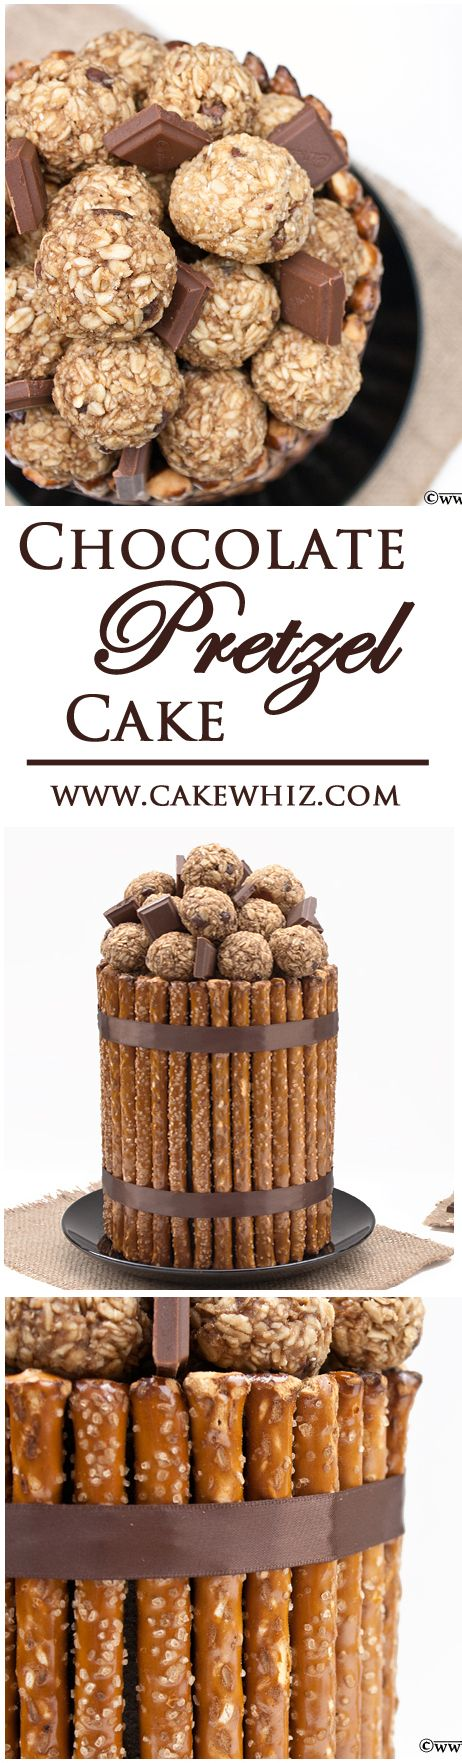 PRETZEL CAKE .... An awesome chocolate cake covered in pretzel rods, topped off with delicious choco peanut butter balls and chocolate chunks! From cakewhiz.com